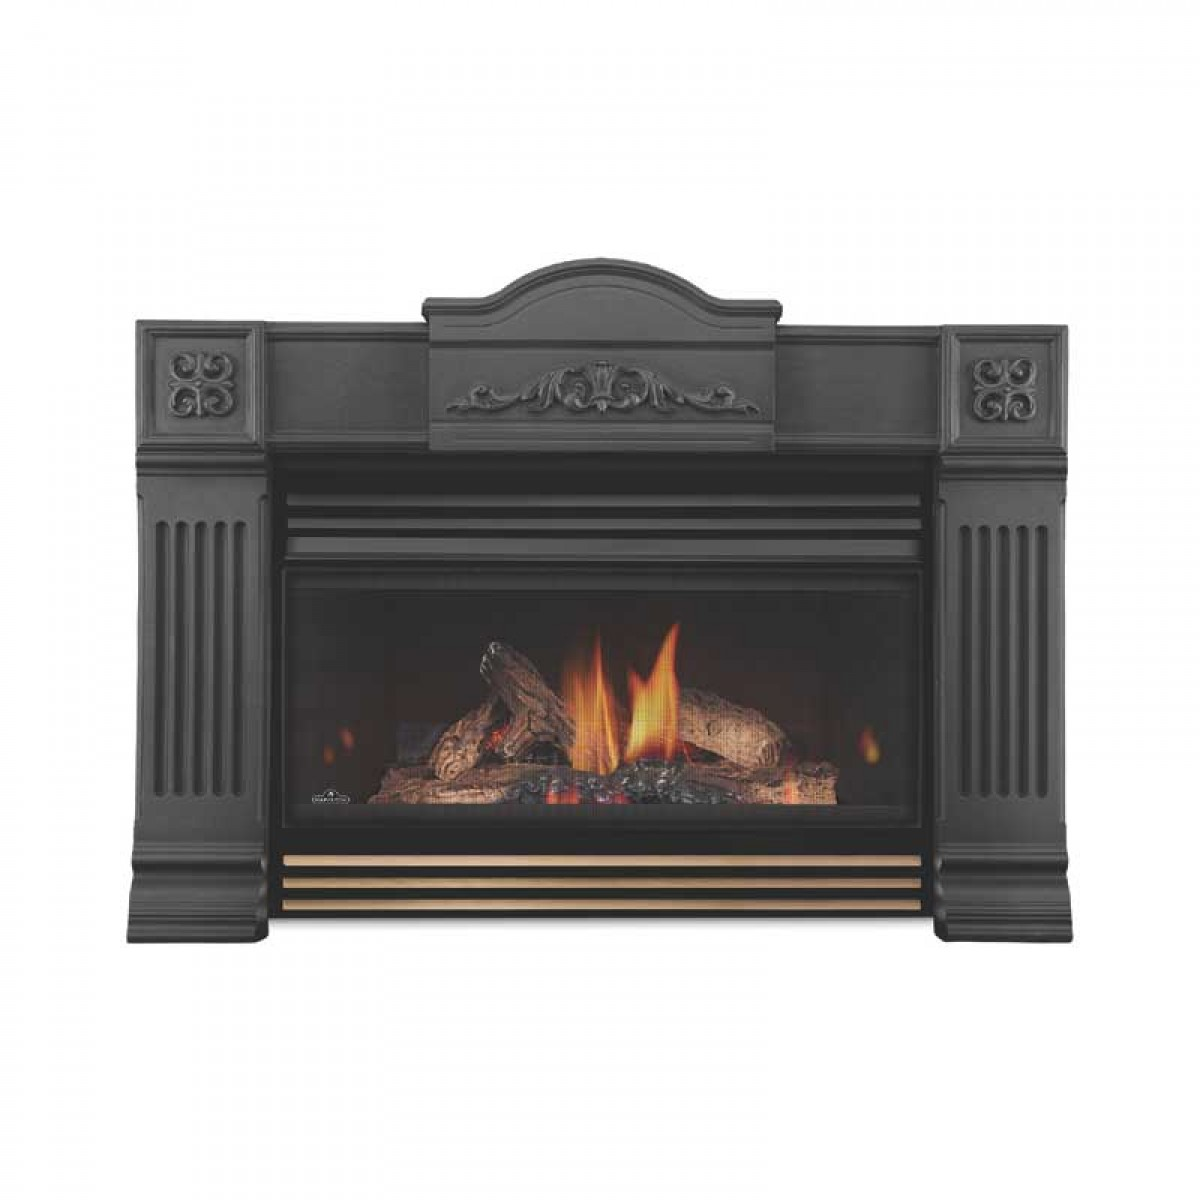 Napoleon Gi 4n Basic Natural Gas Fireplace Insert W